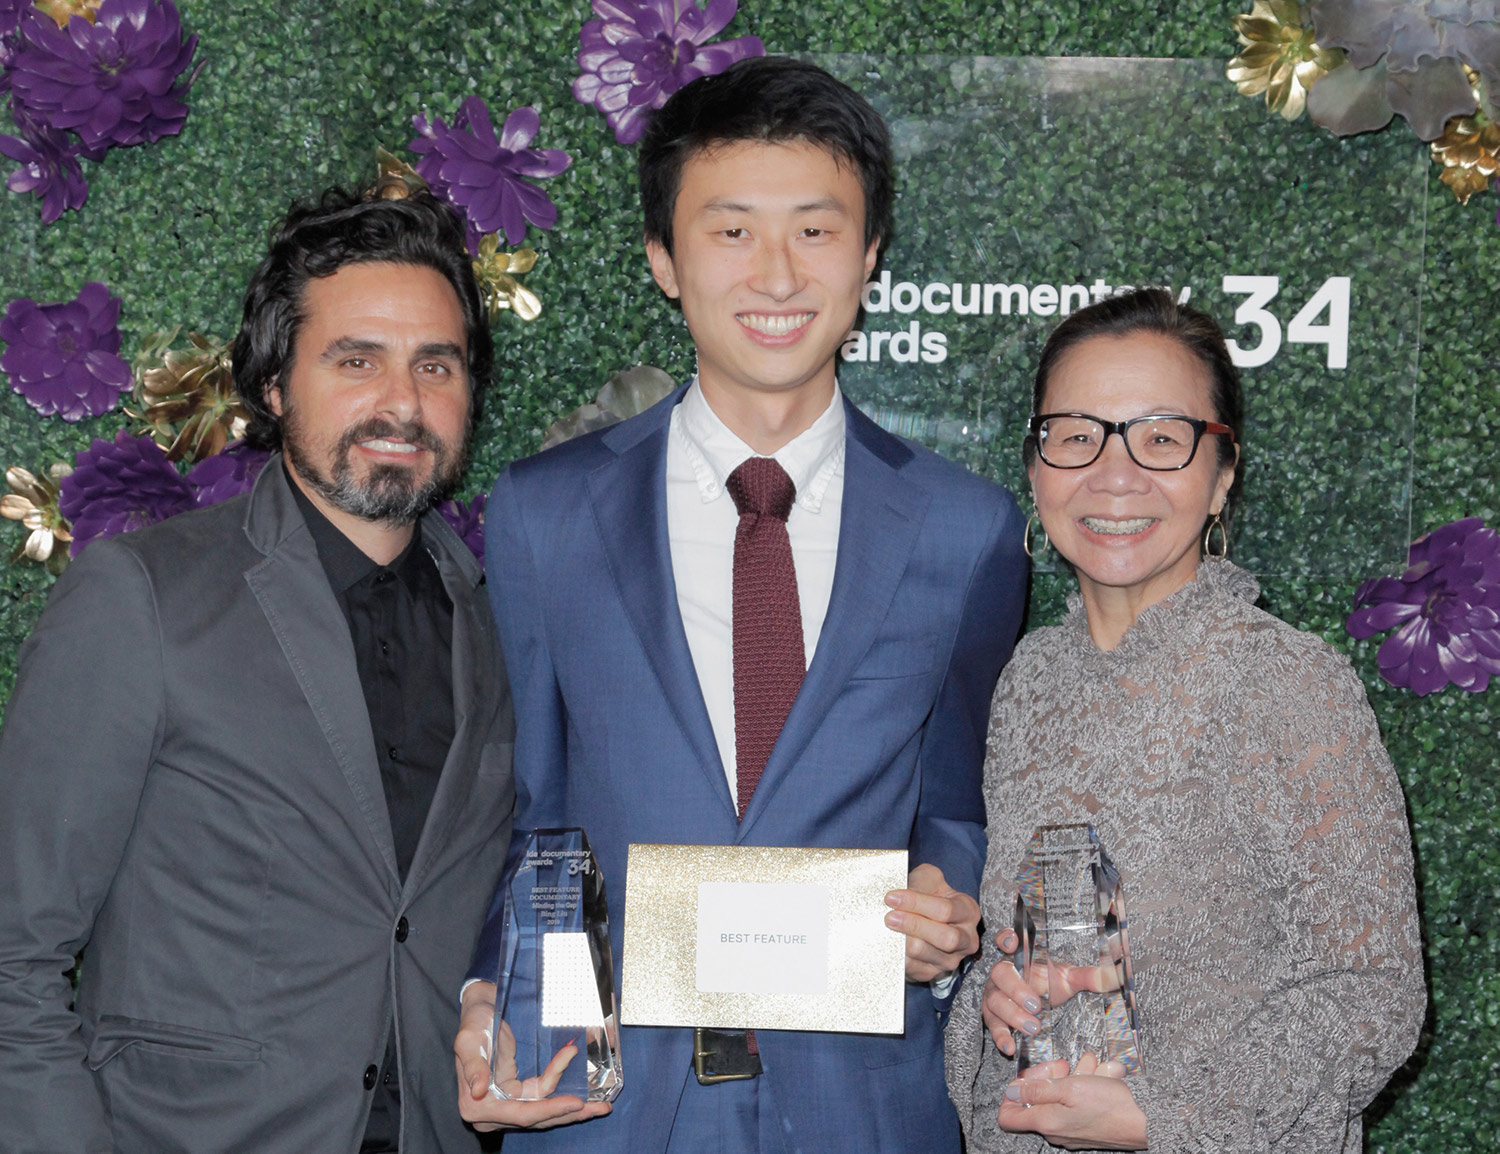 Filmmaker Bing Liu, who won both Emerging Filmmaker and Best Feature Award at the 2018 Documentary Awards